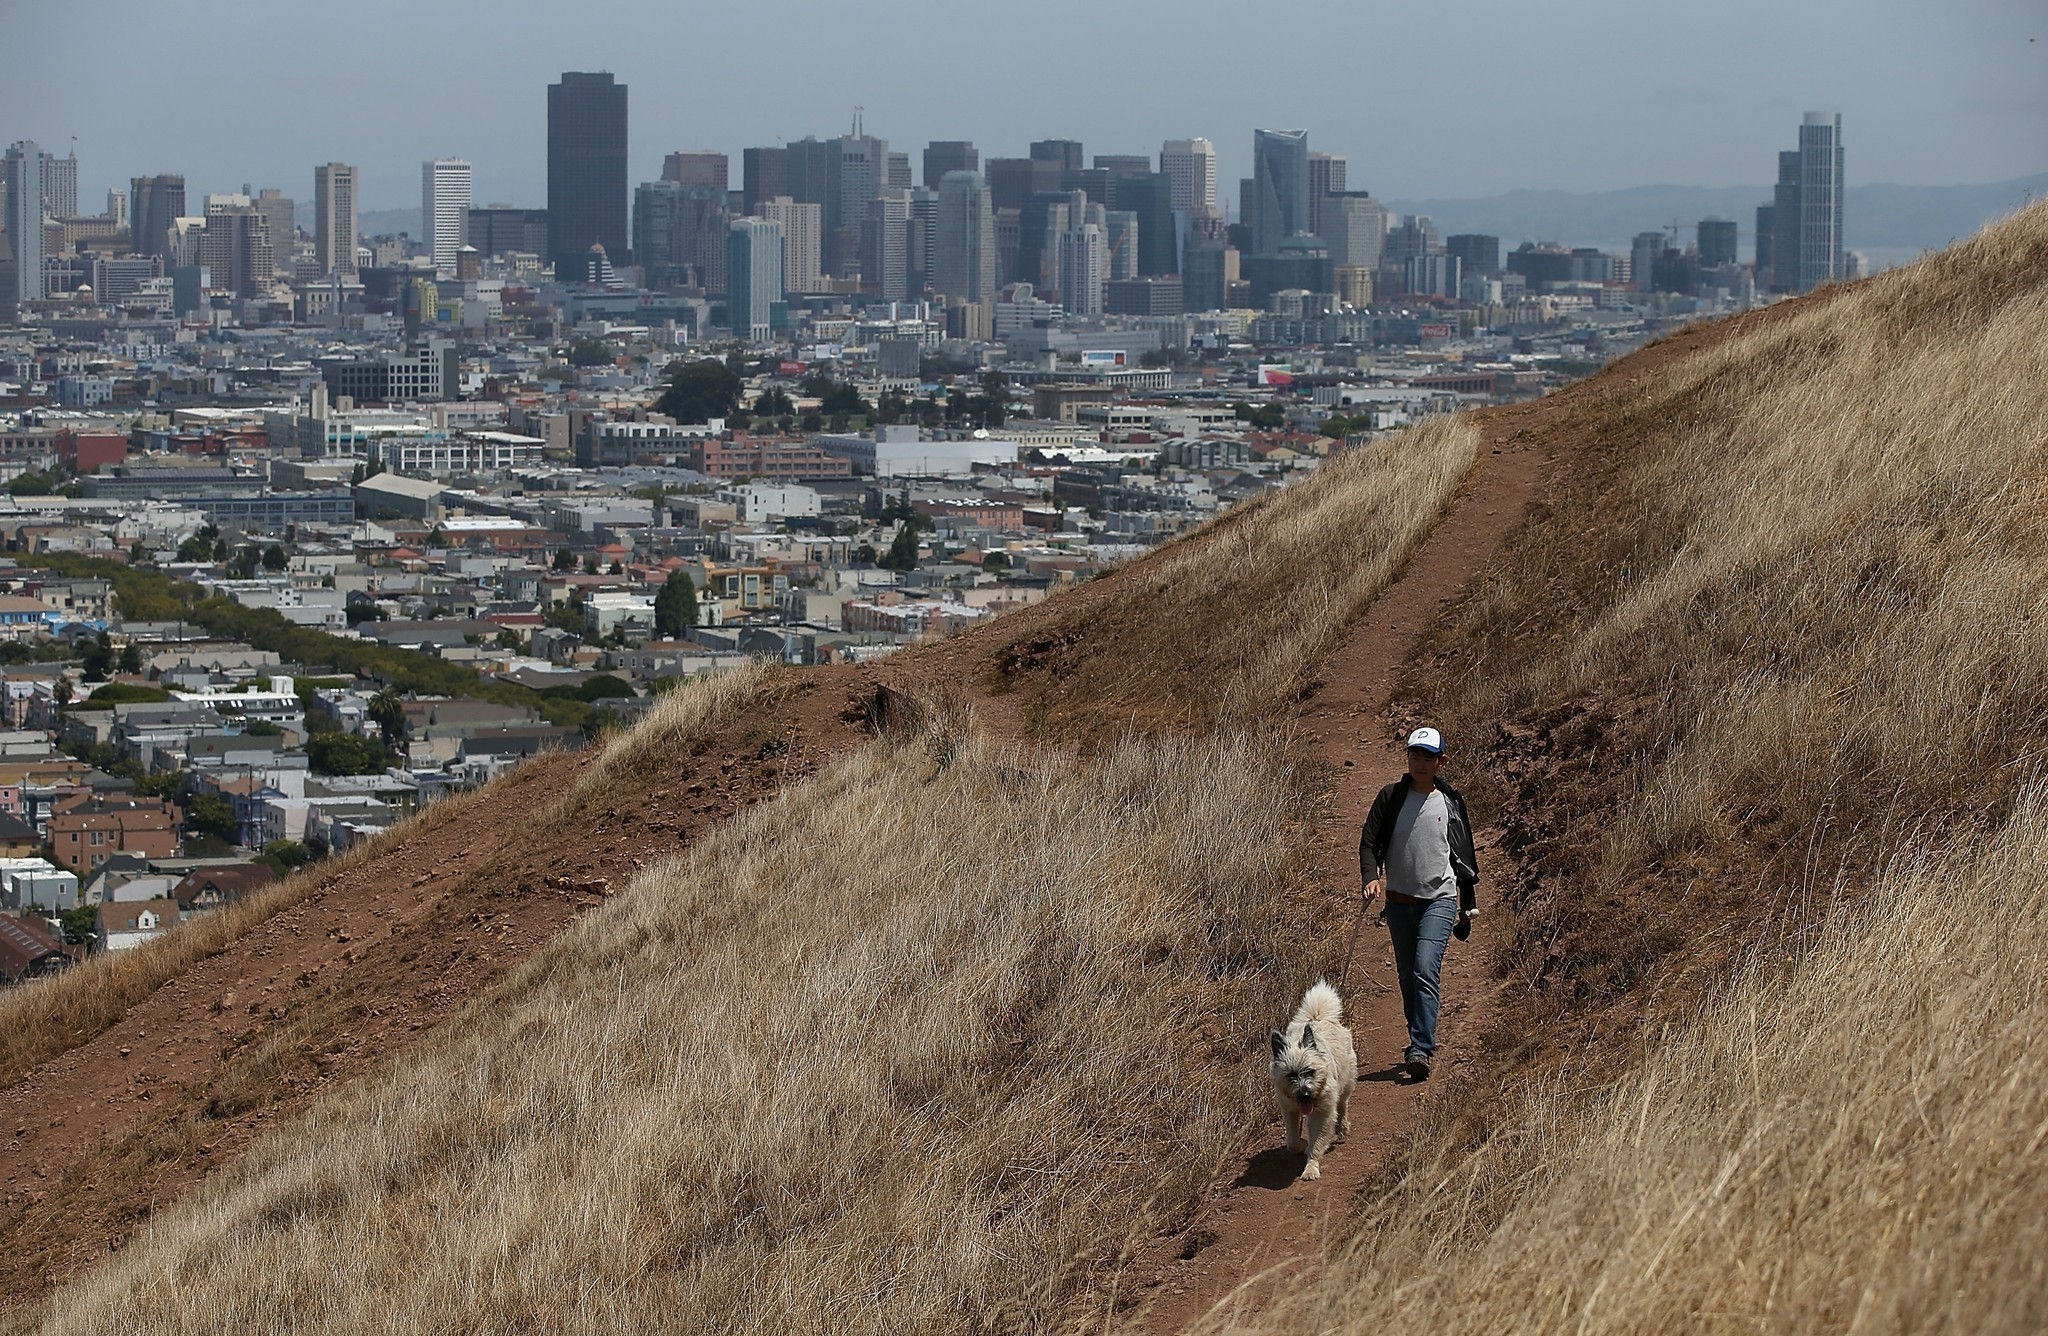 San Francisco breaks heat record amid California drought, heat wave